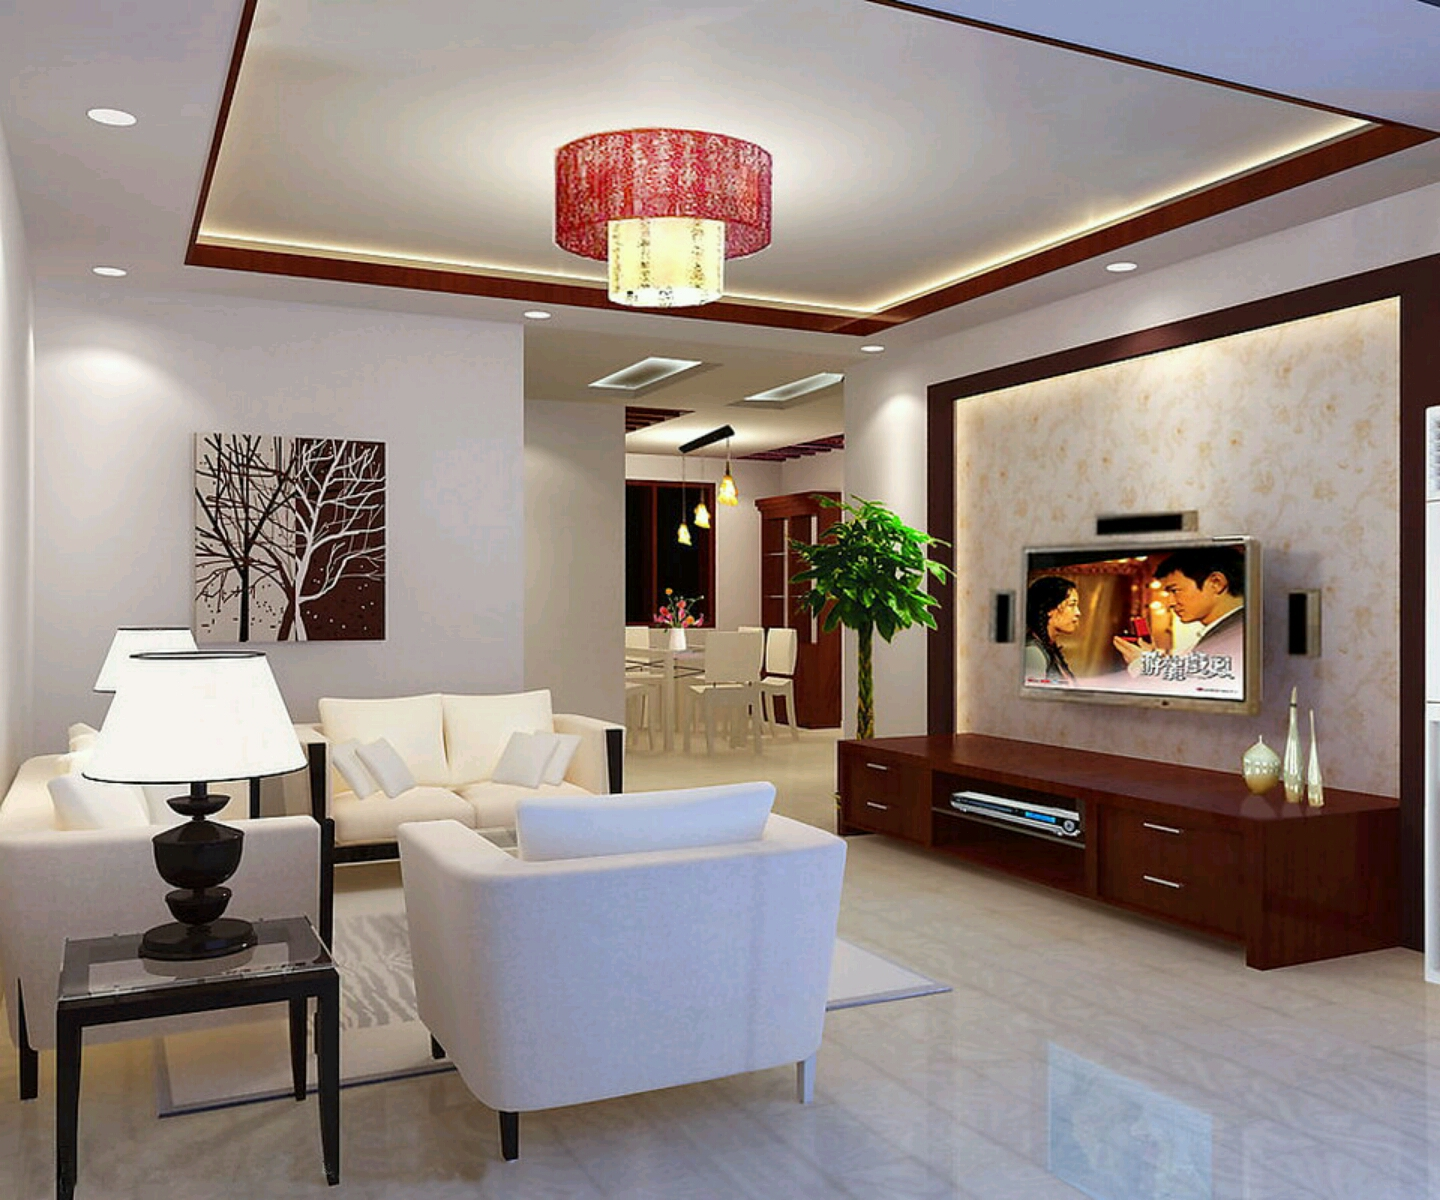 Modern interior decoration living rooms ceiling designs for Interiors ideas for living room